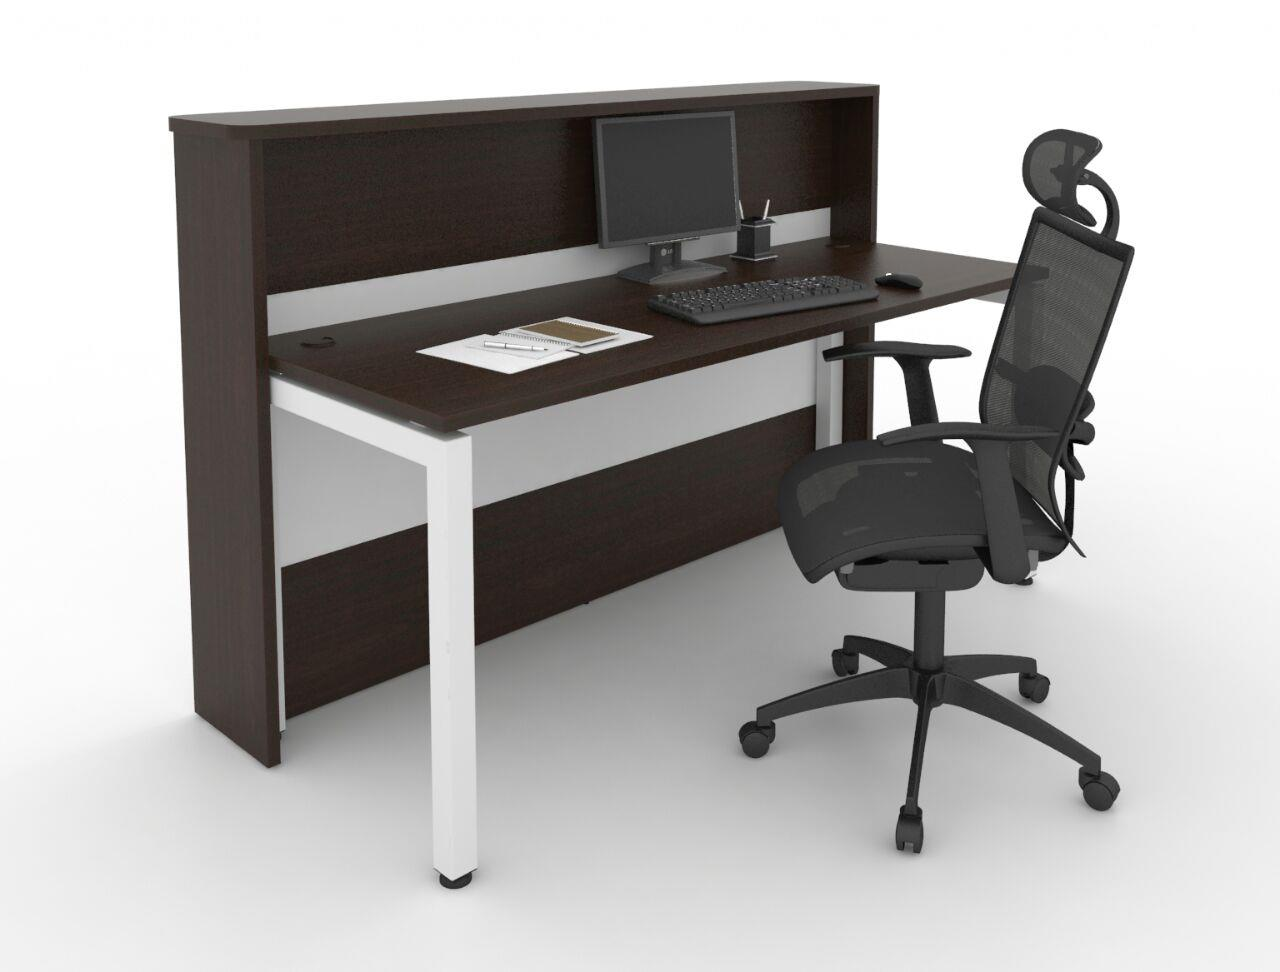 homepage height bamboo desk who adjustable uplift an standing we are at table